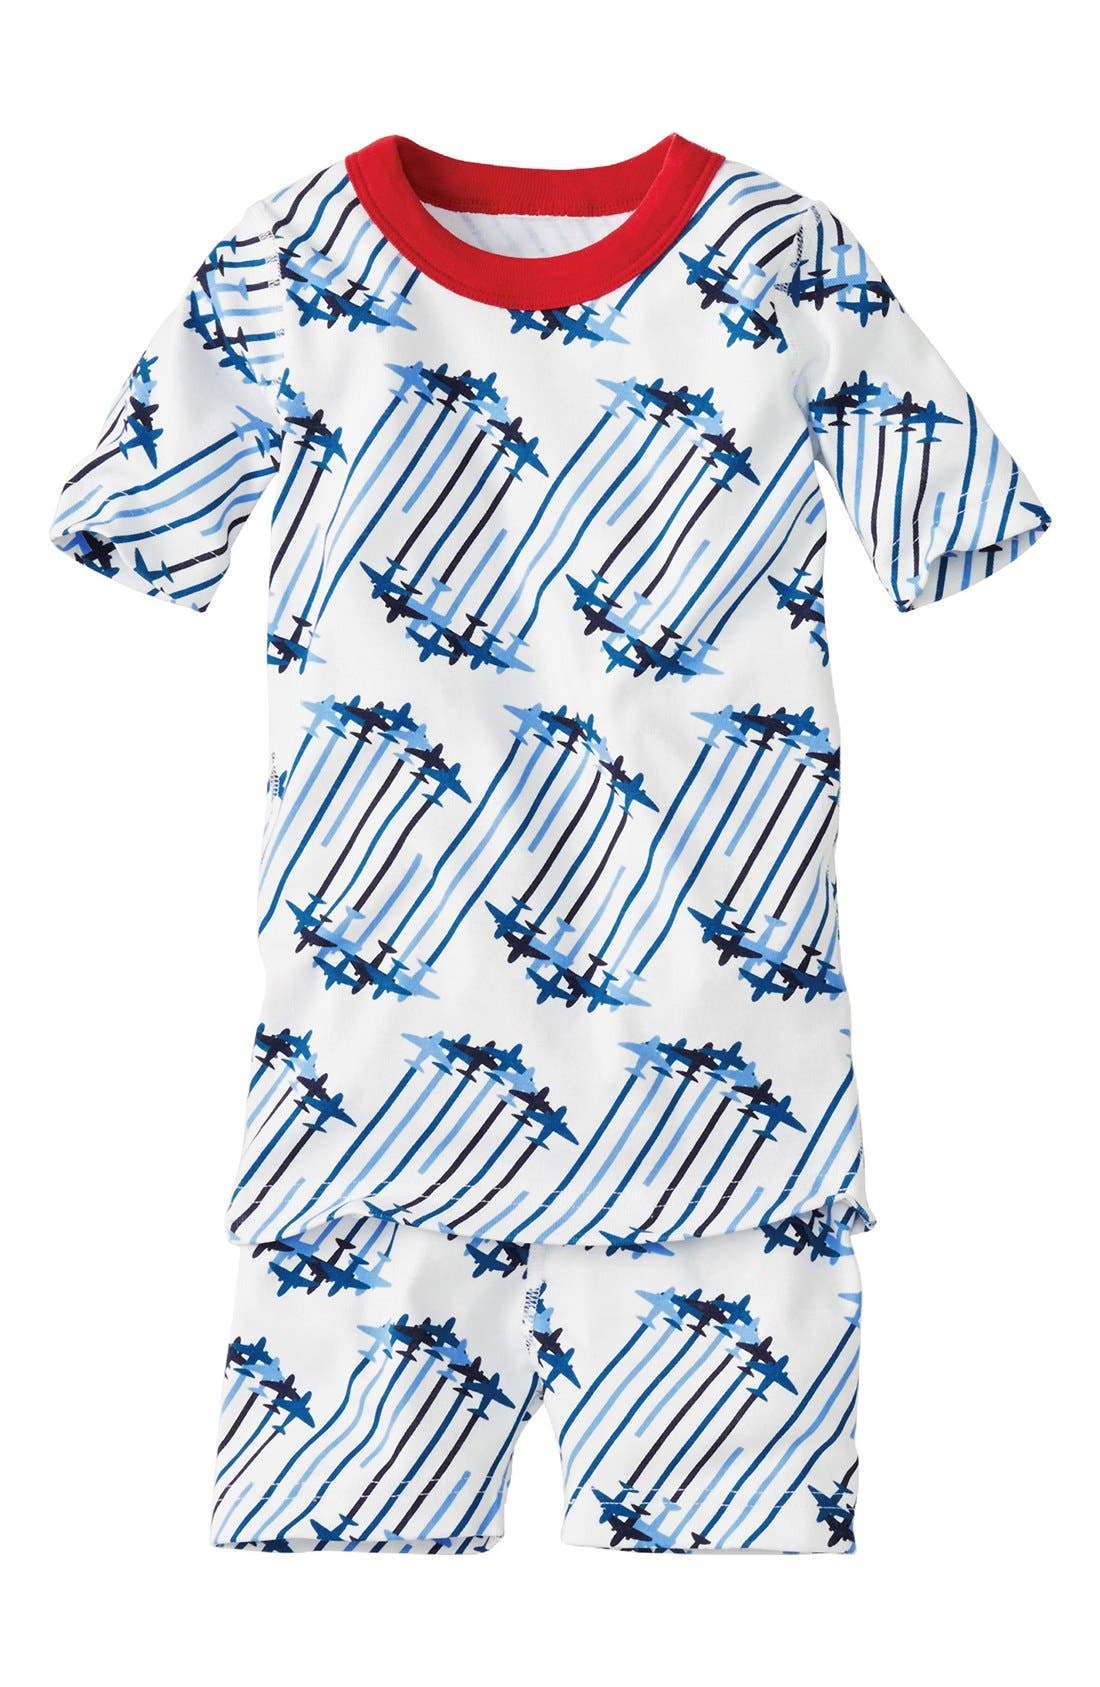 Main Image - Hanna Andersson Organic Cotton Two-Piece Fitted Pajamas (Toddler Boys, Little Boys & Big Boys)